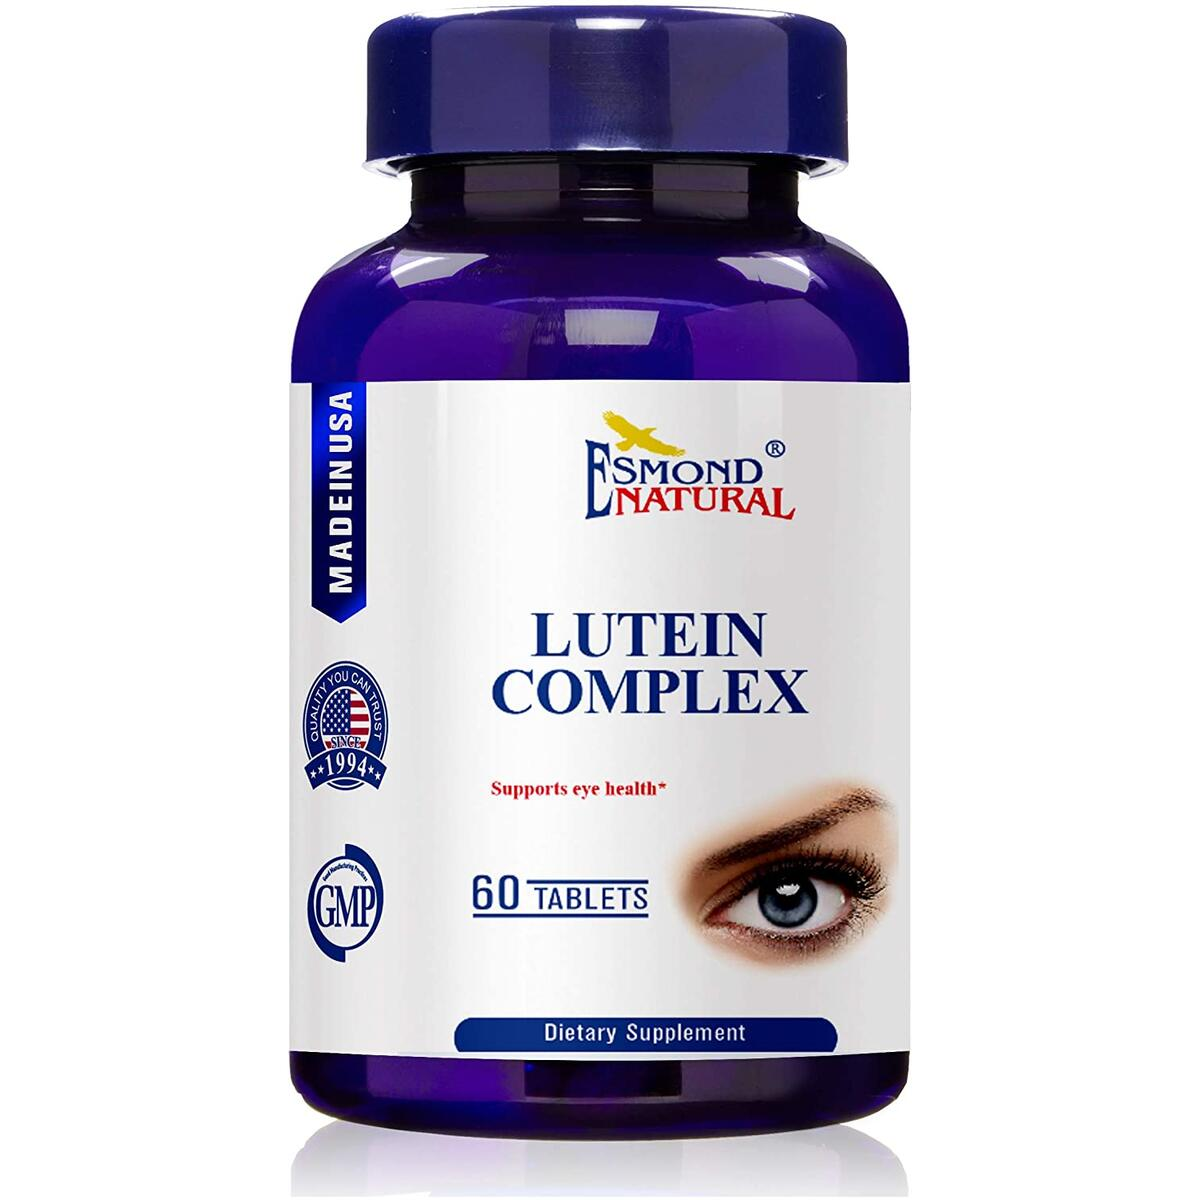 (3 Count, 10% Off) Esmond Natural: Lutein Complex (Supports Eye Health), GMP, Natural Product Assn Certified, Made in USA-180 Tablets